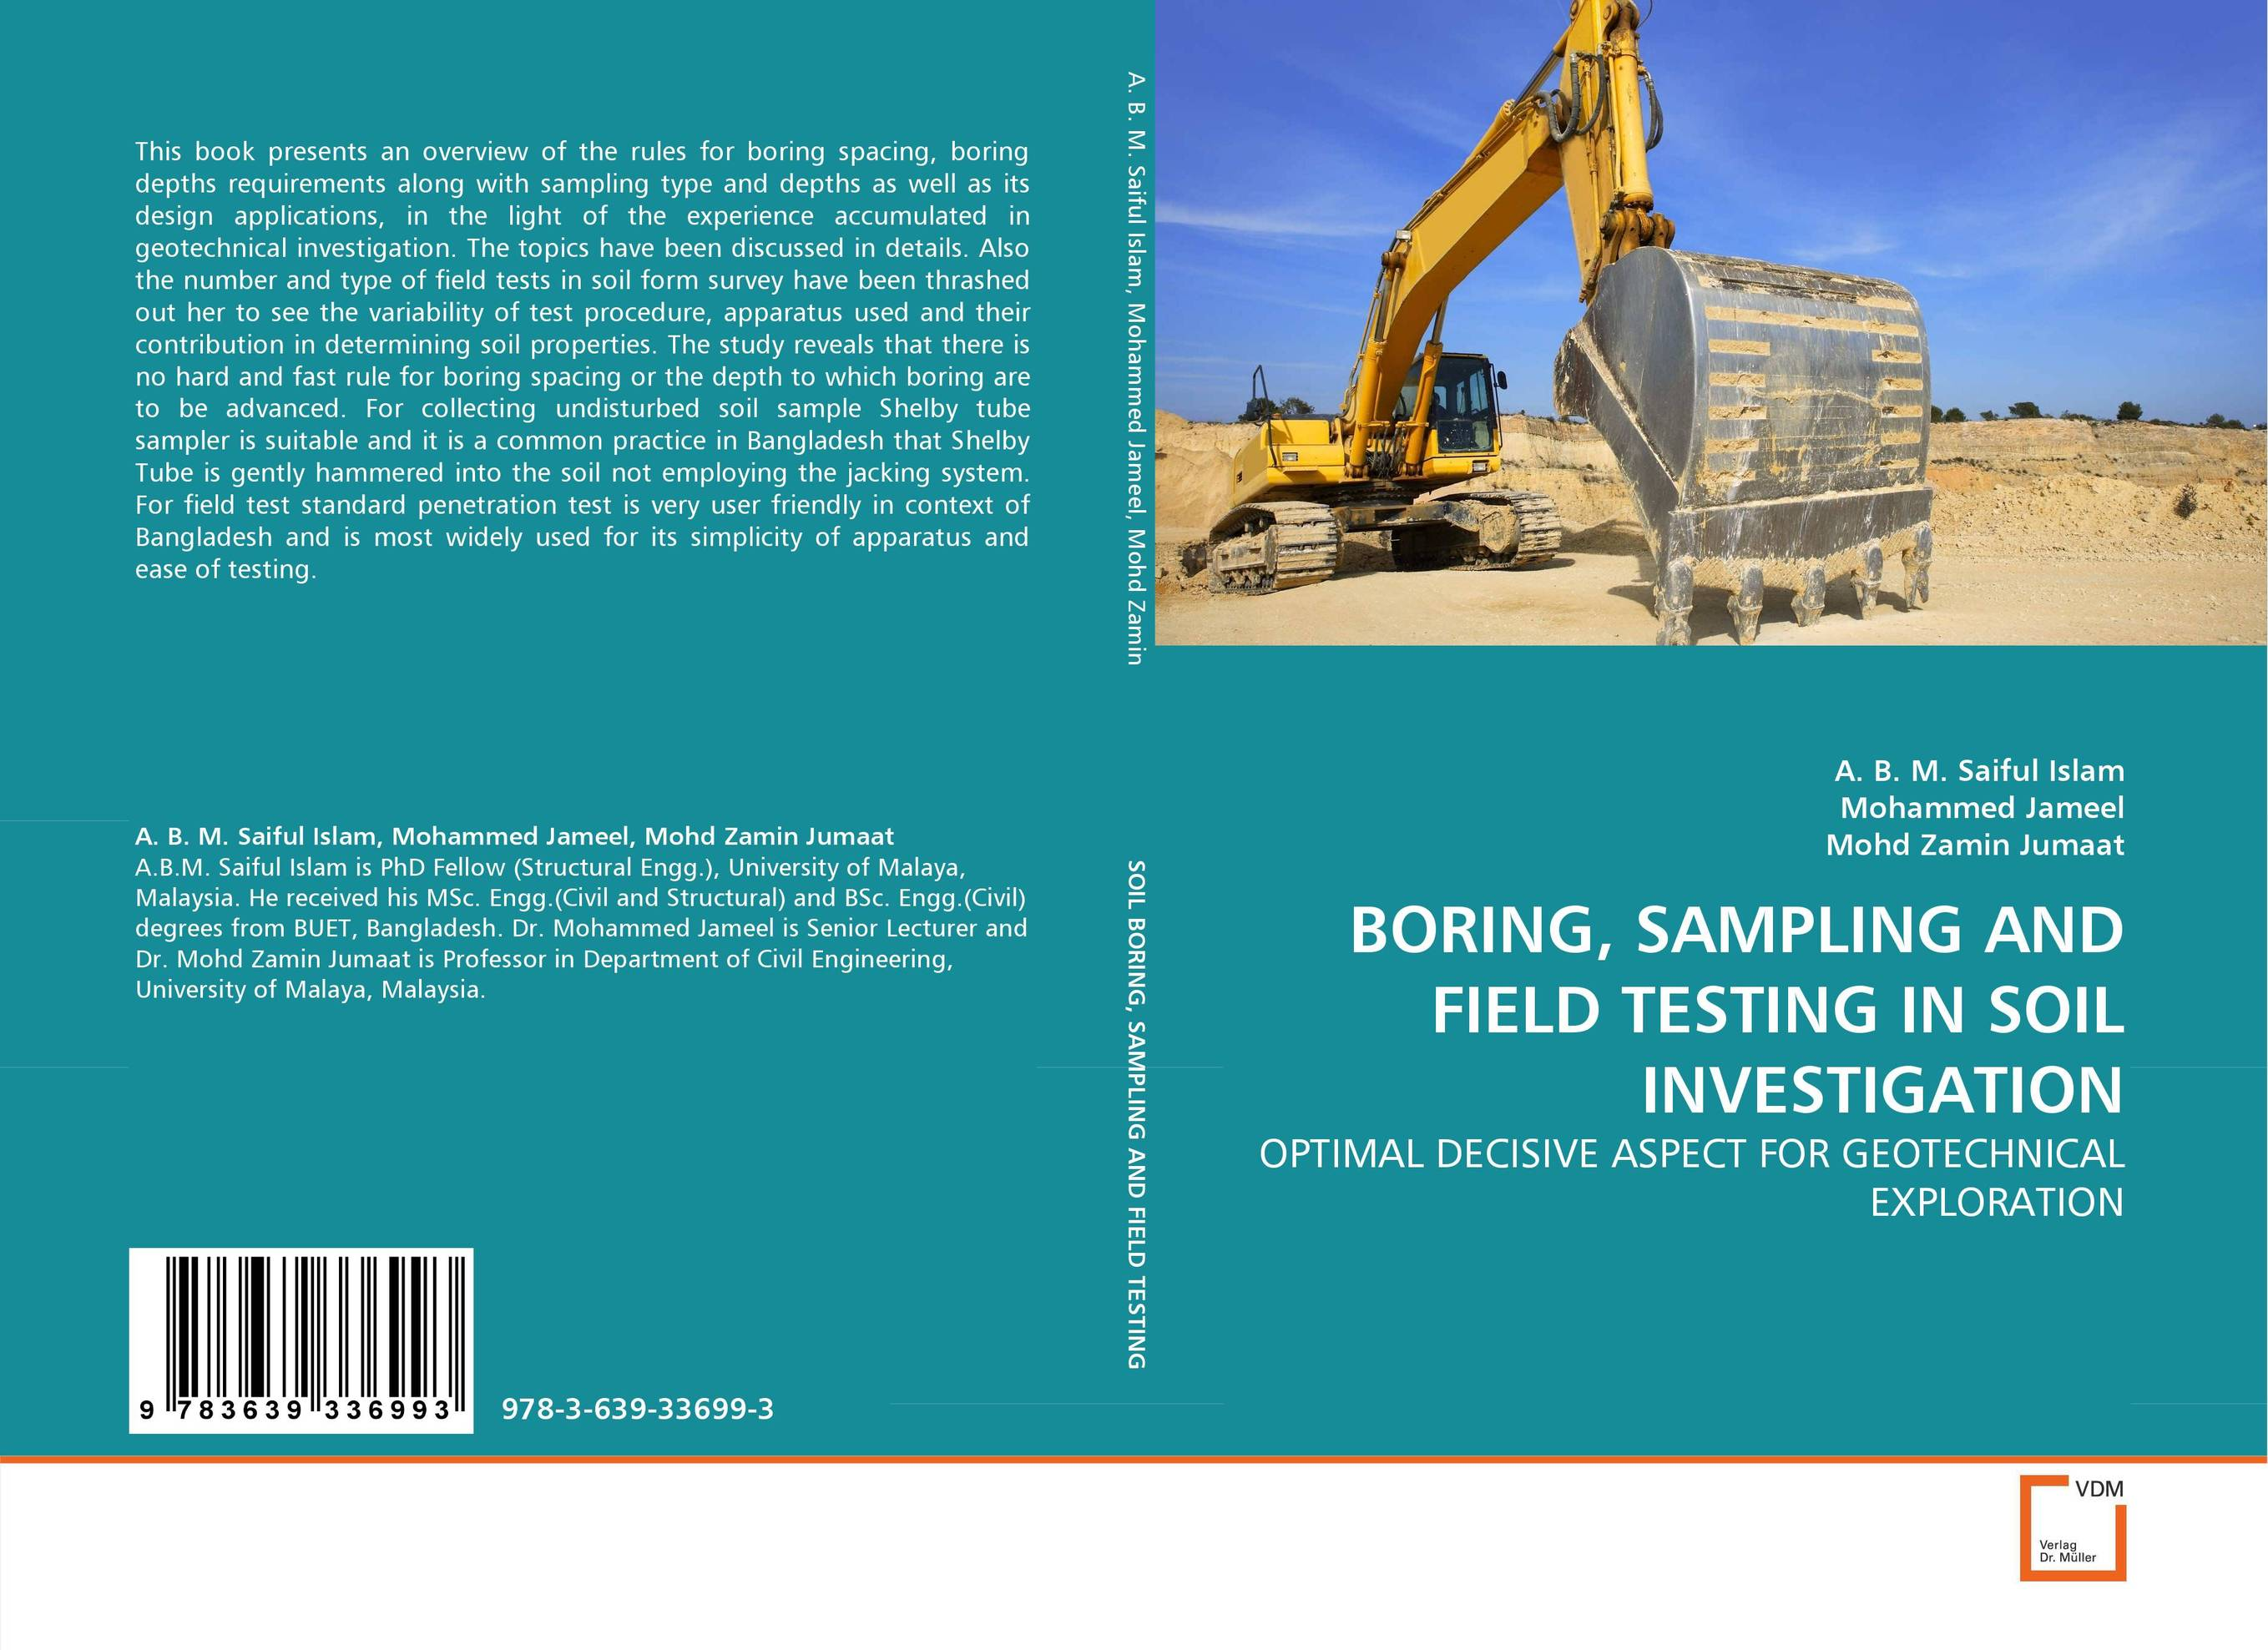 BORING, SAMPLING AND FIELD TESTING IN SOIL INVESTIGATION